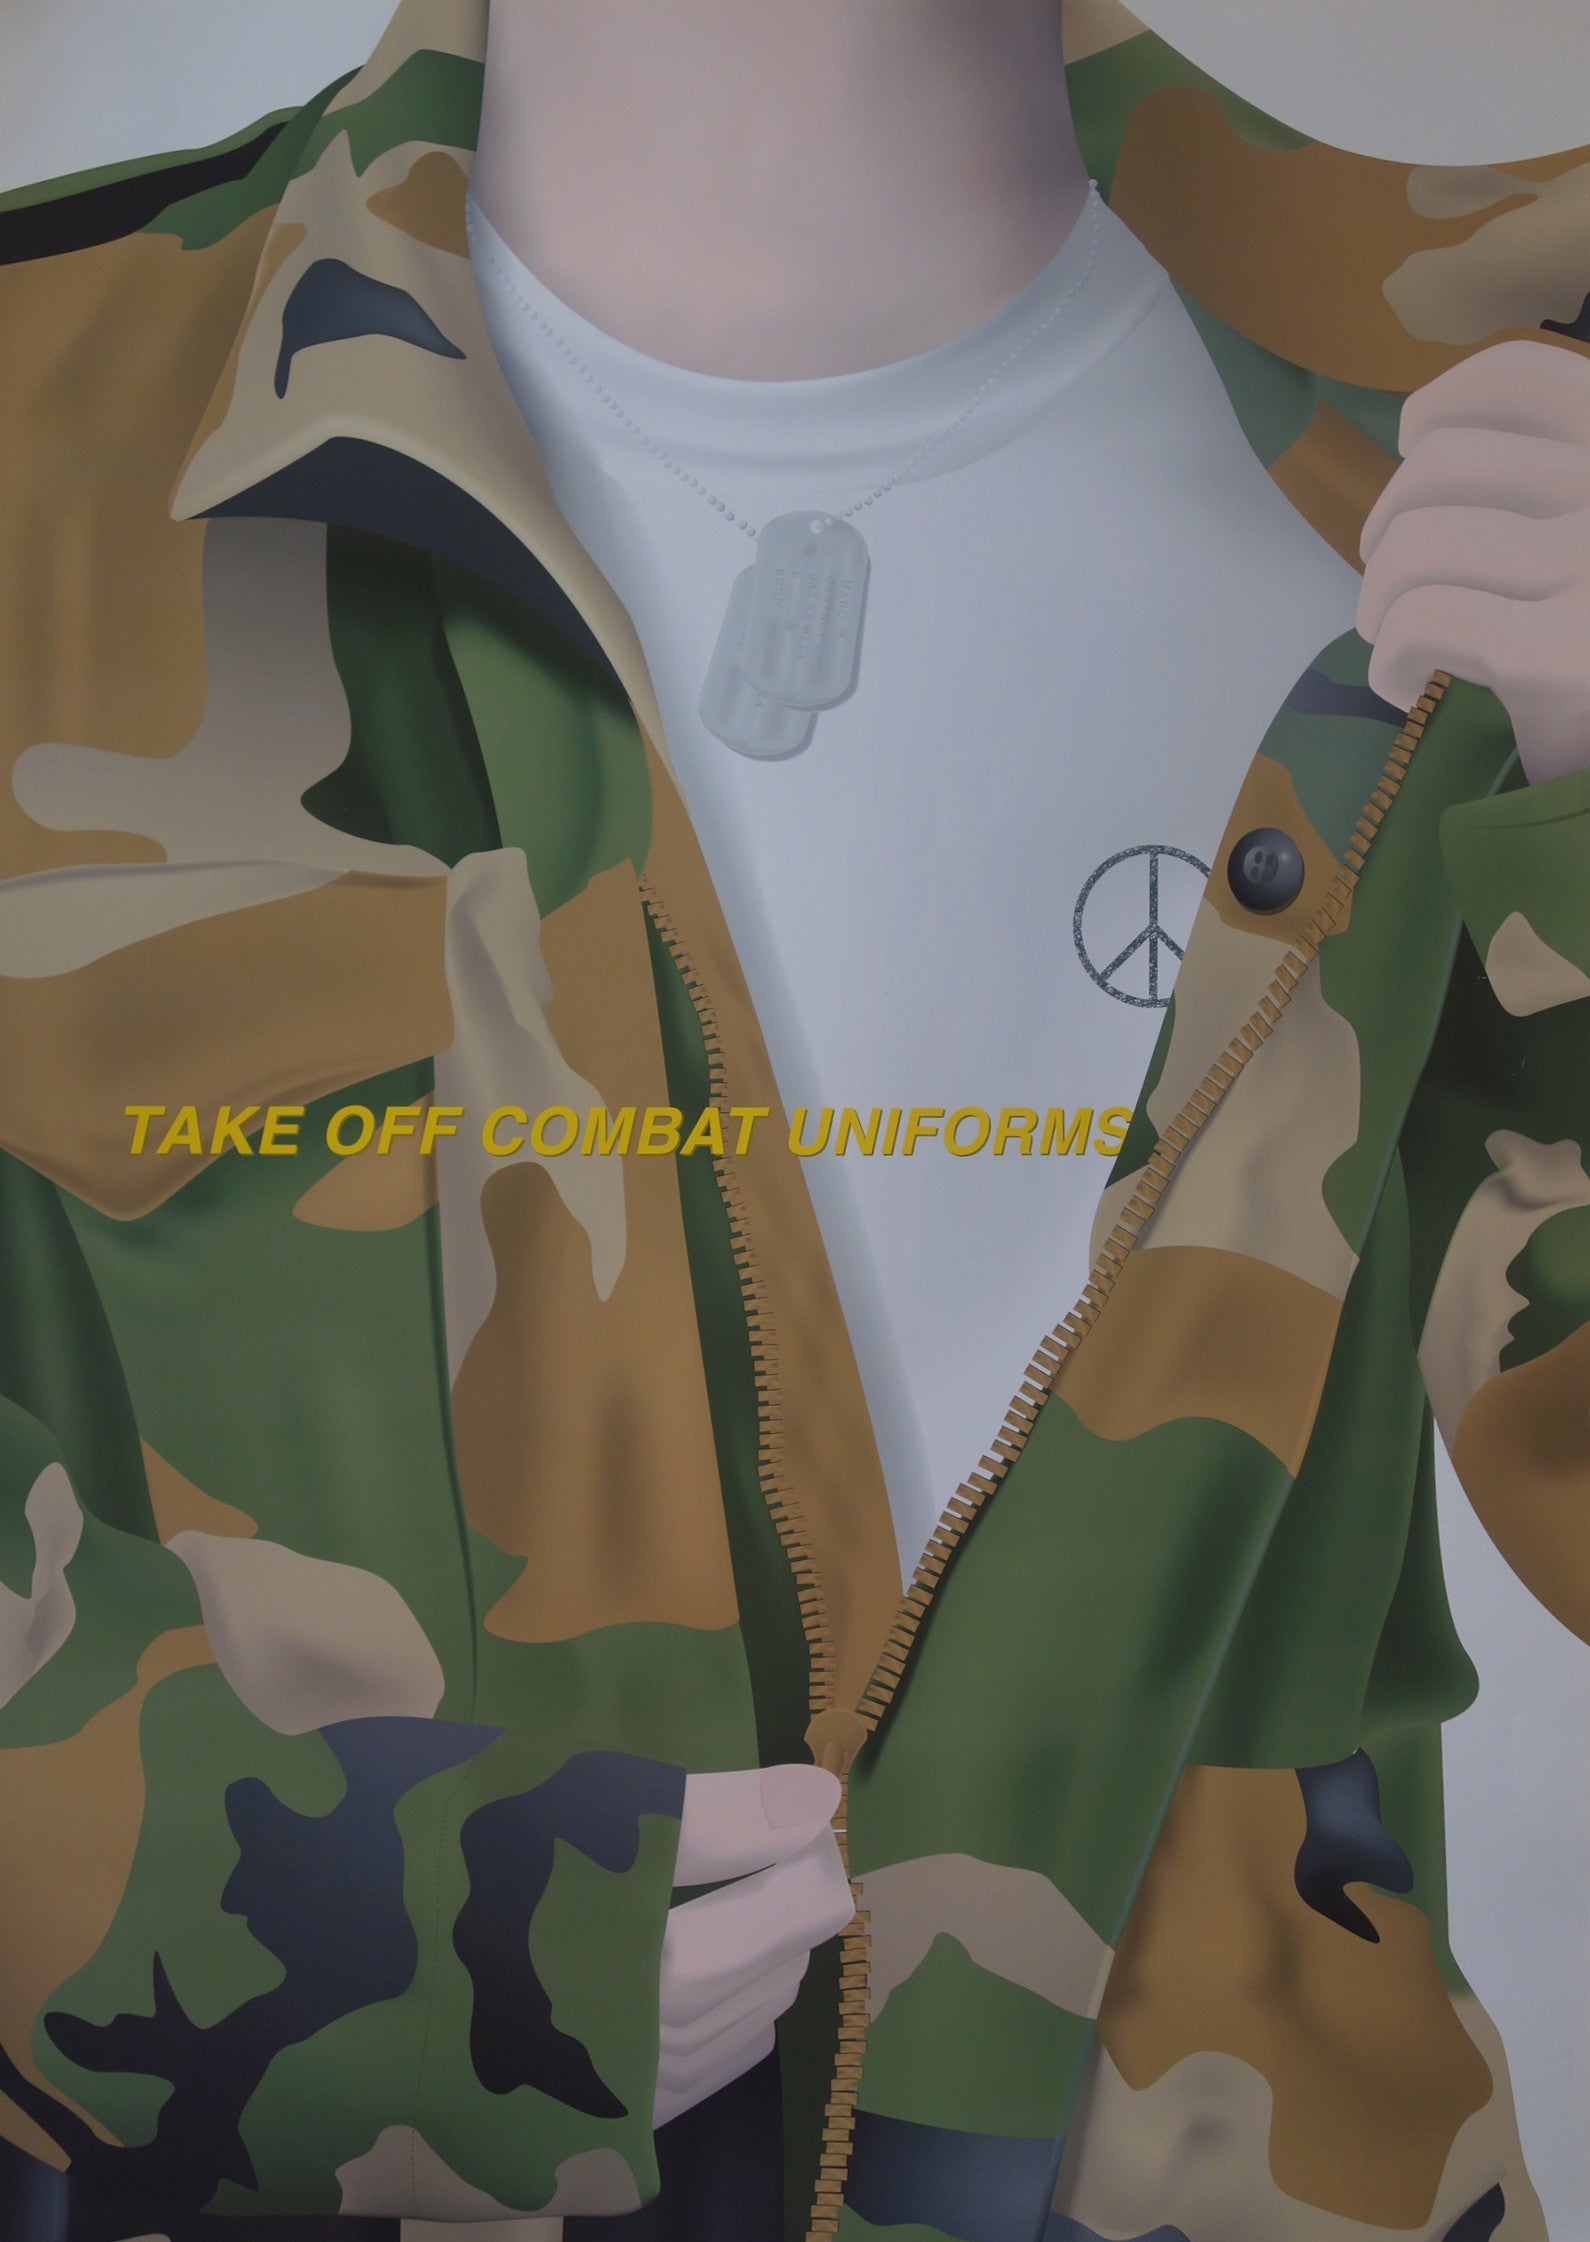 Take Off Combat Uniforms